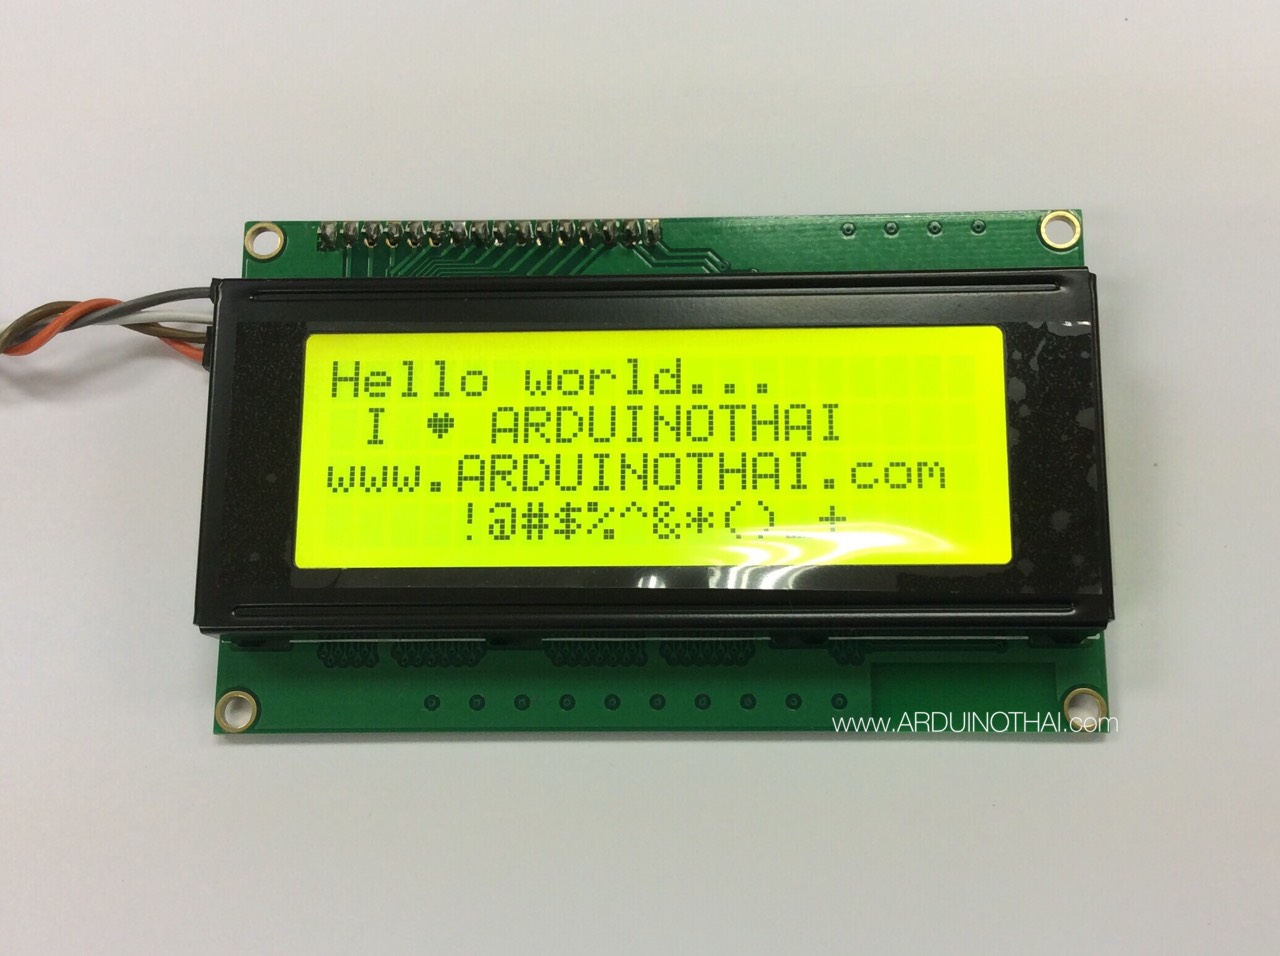 2004 LCD With I2C Interface (Yellow Screen)